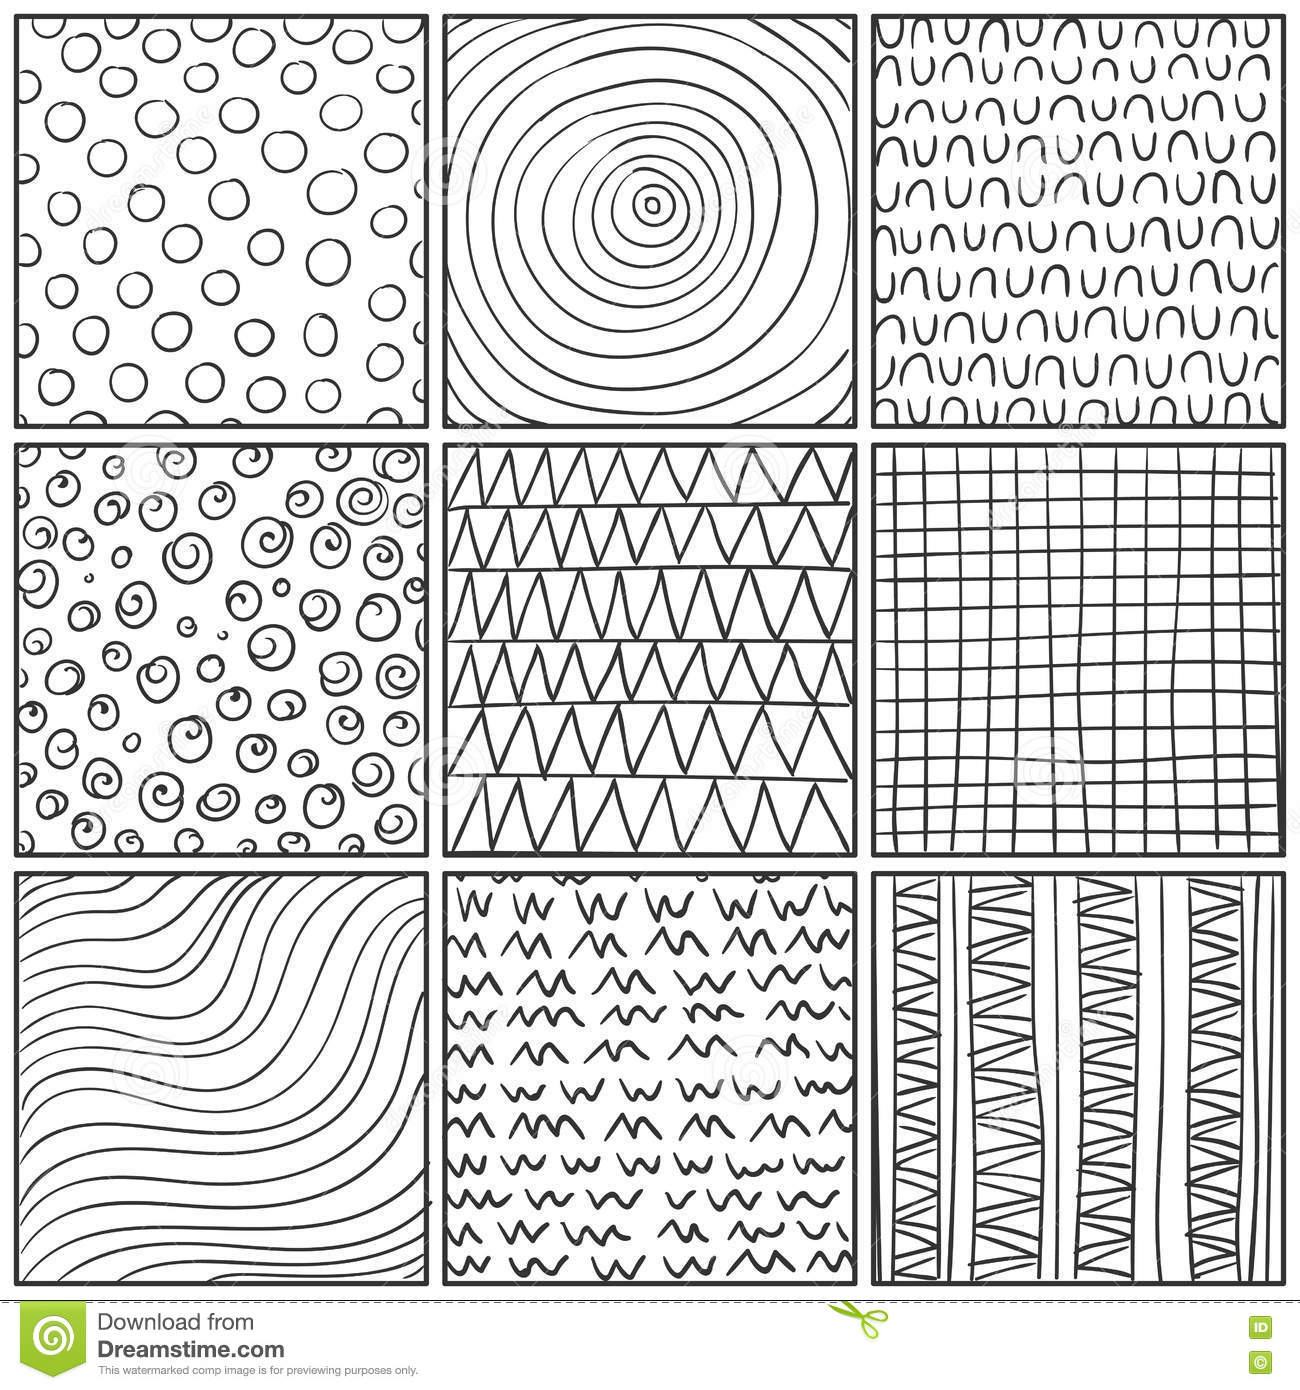 Line Art Design Abstract : Abstract line drawing design elements stock illustration